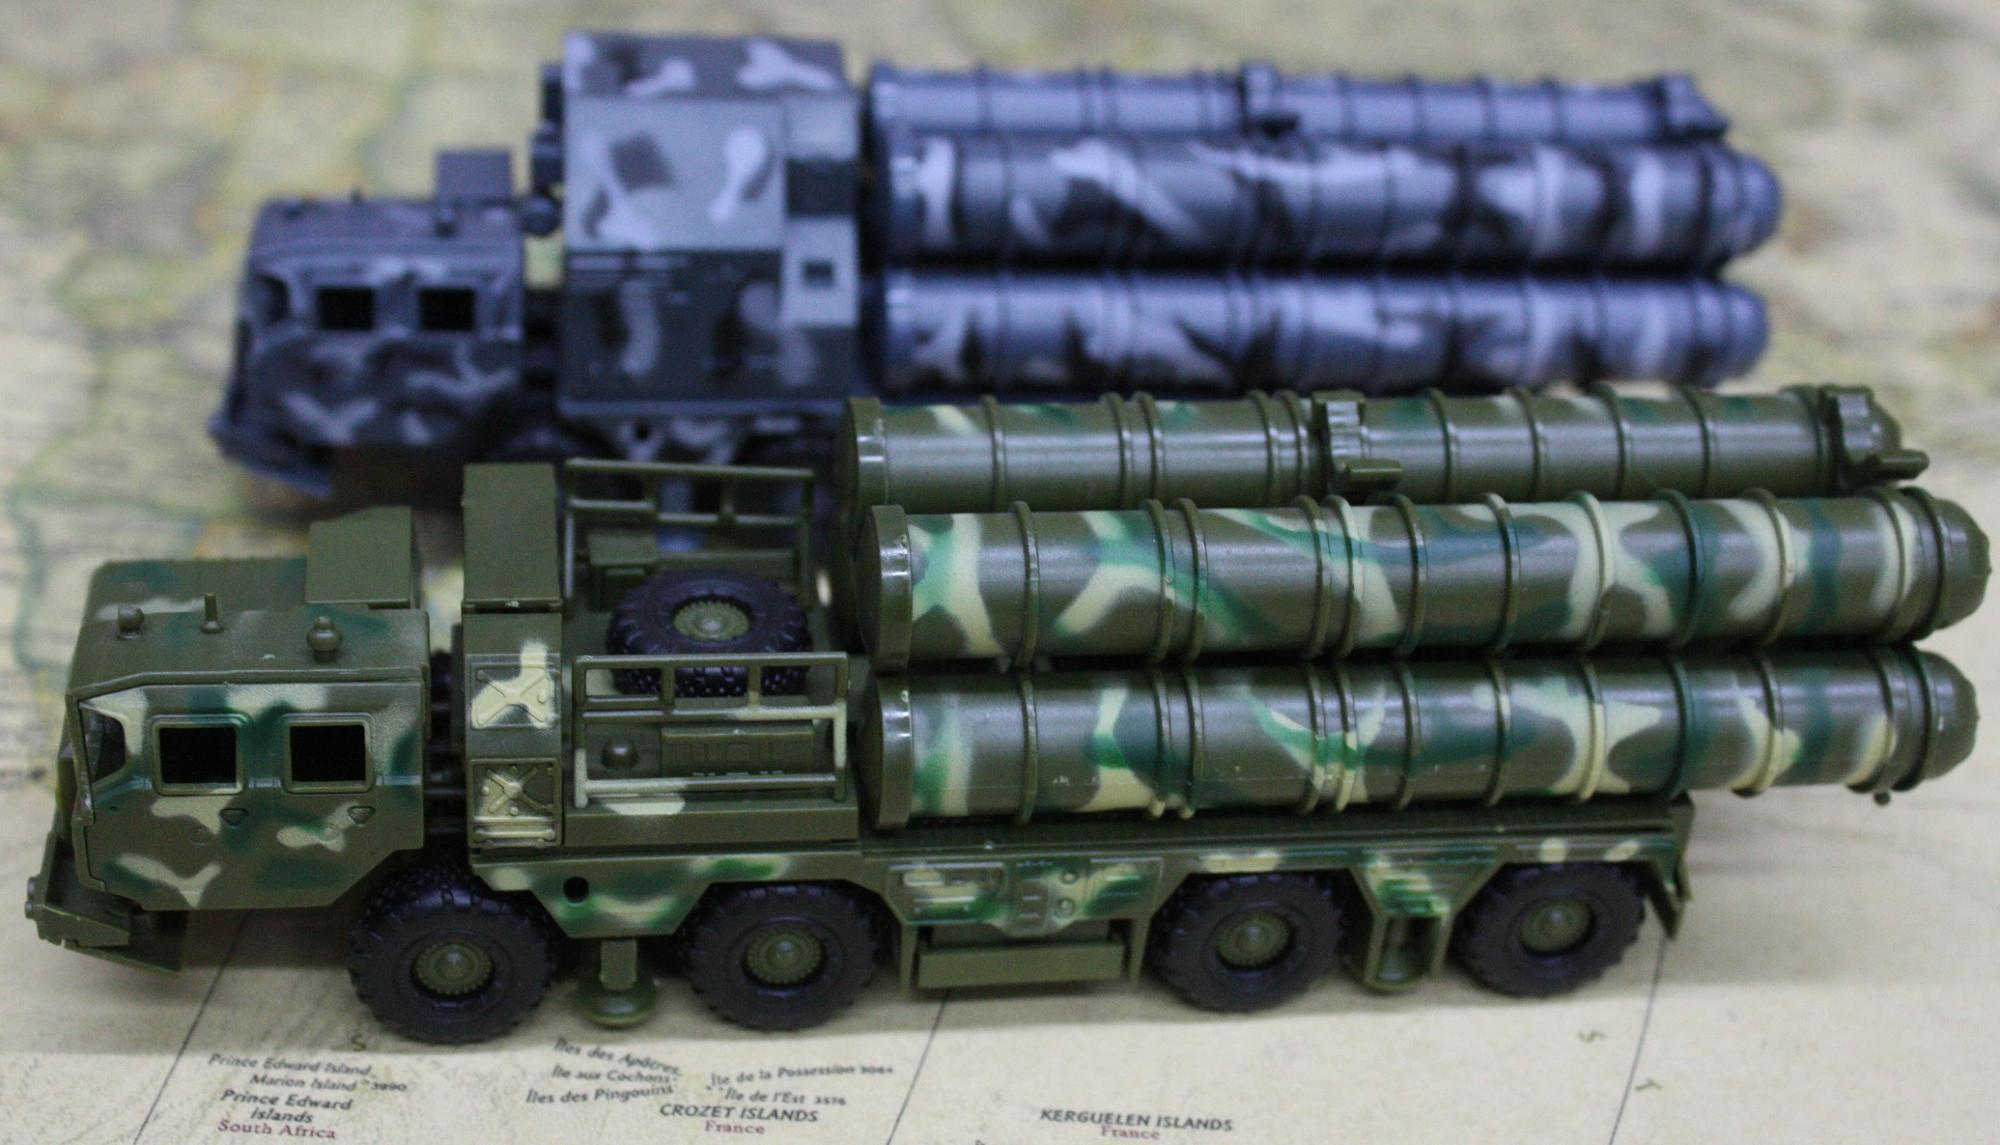 S300 Missile Model Vehicle Plastic Assemble Kit 1:72 Military Model construction kit